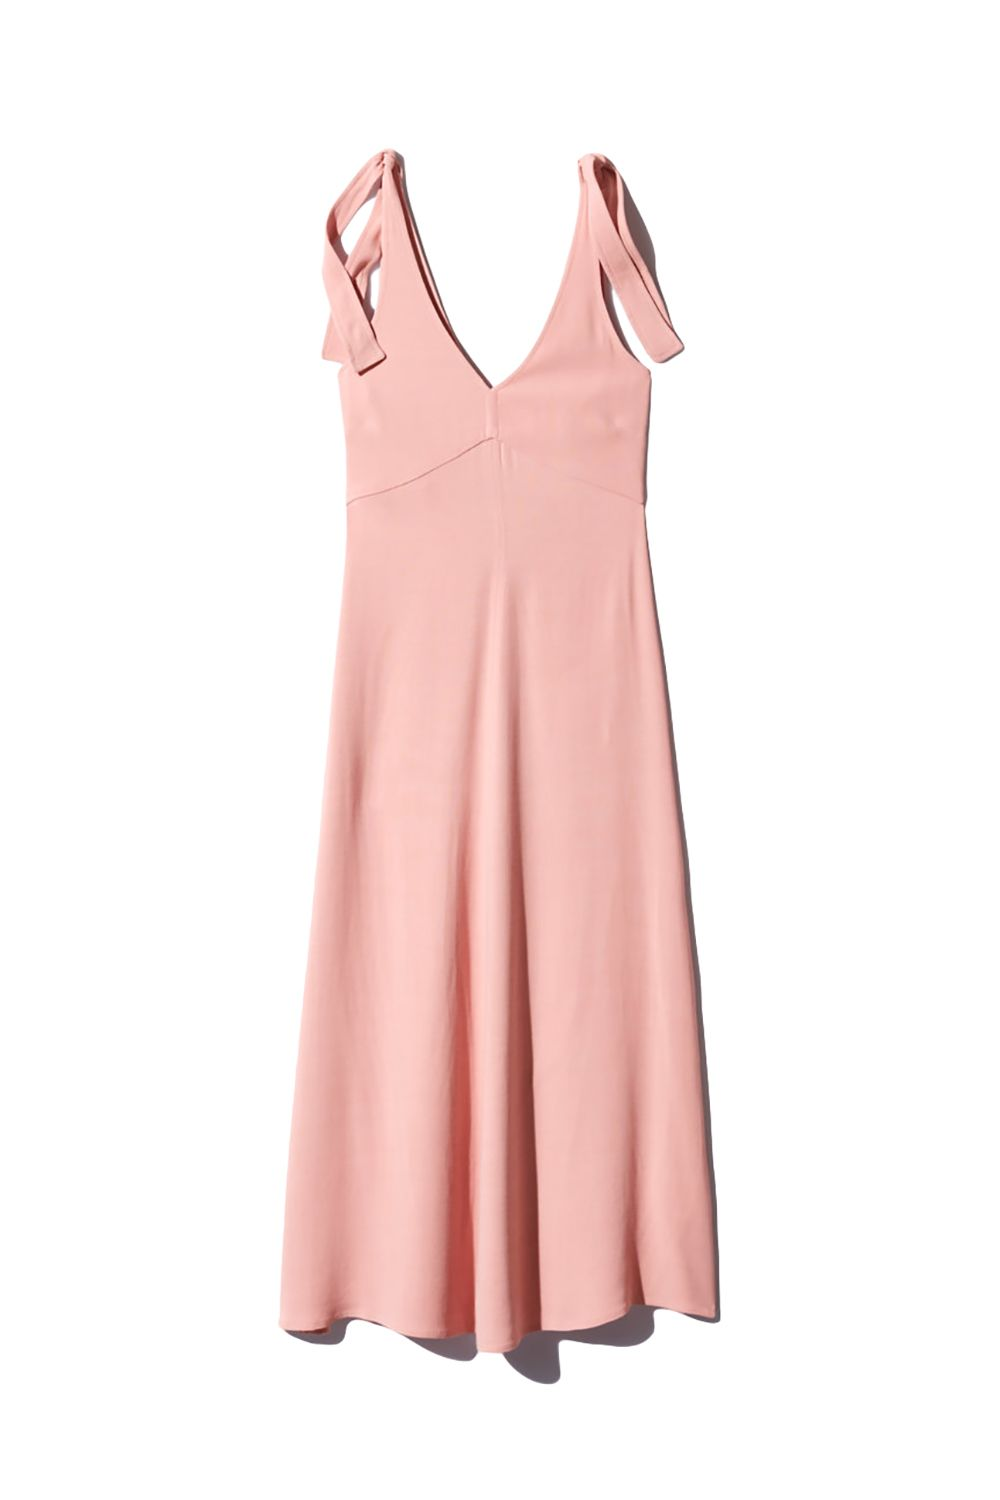 """<p>Shoulder ties and a fluted hem, because shouldn't your skirt match your drink glass of choice?&nbsp&#x3B;</p><p><strong data-verified=""""redactor"""" data-redactor-tag=""""strong"""">BUY IT:&nbsp&#x3B;</strong>Aritzia, $70&#x3B;&nbsp&#x3B;<span class=""""redactor-invisible-space"""" data-verified=""""redactor"""" data-redactor-tag=""""span"""" data-redactor-class=""""redactor-invisible-space""""></span><a href=""""http://us.aritzia.com/product/pr%C3%A9face-dress/62190.html?dwvar_62190_color=12289"""" target=""""_blank"""" data-tracking-id=""""recirc-text-link"""">aritzia.com</a>.</p>"""